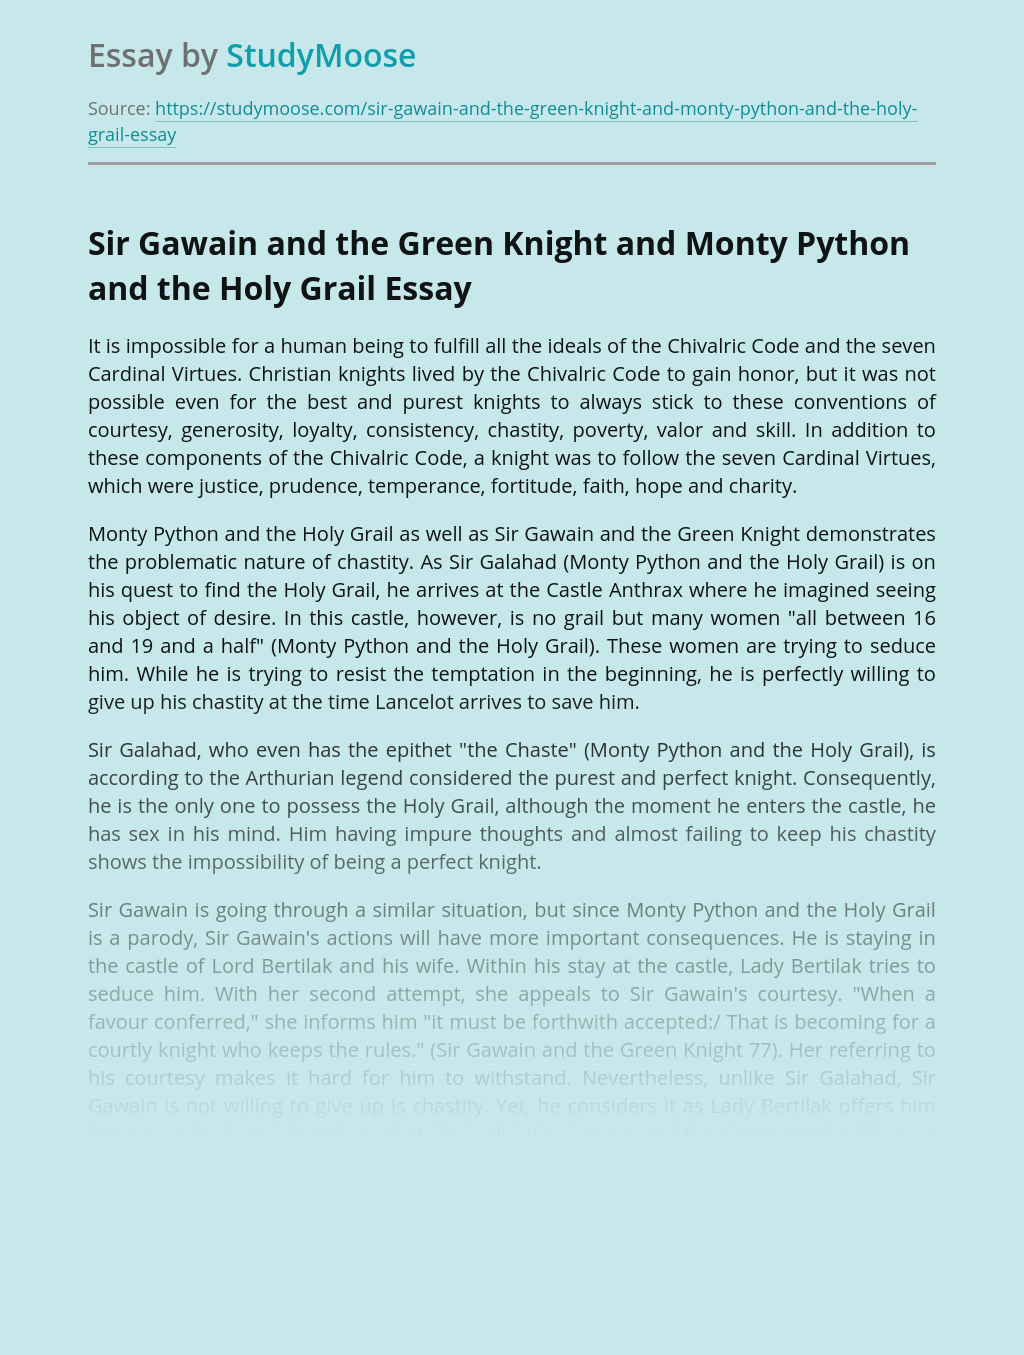 Comparison of Sir Gawain and Monty Python Characters